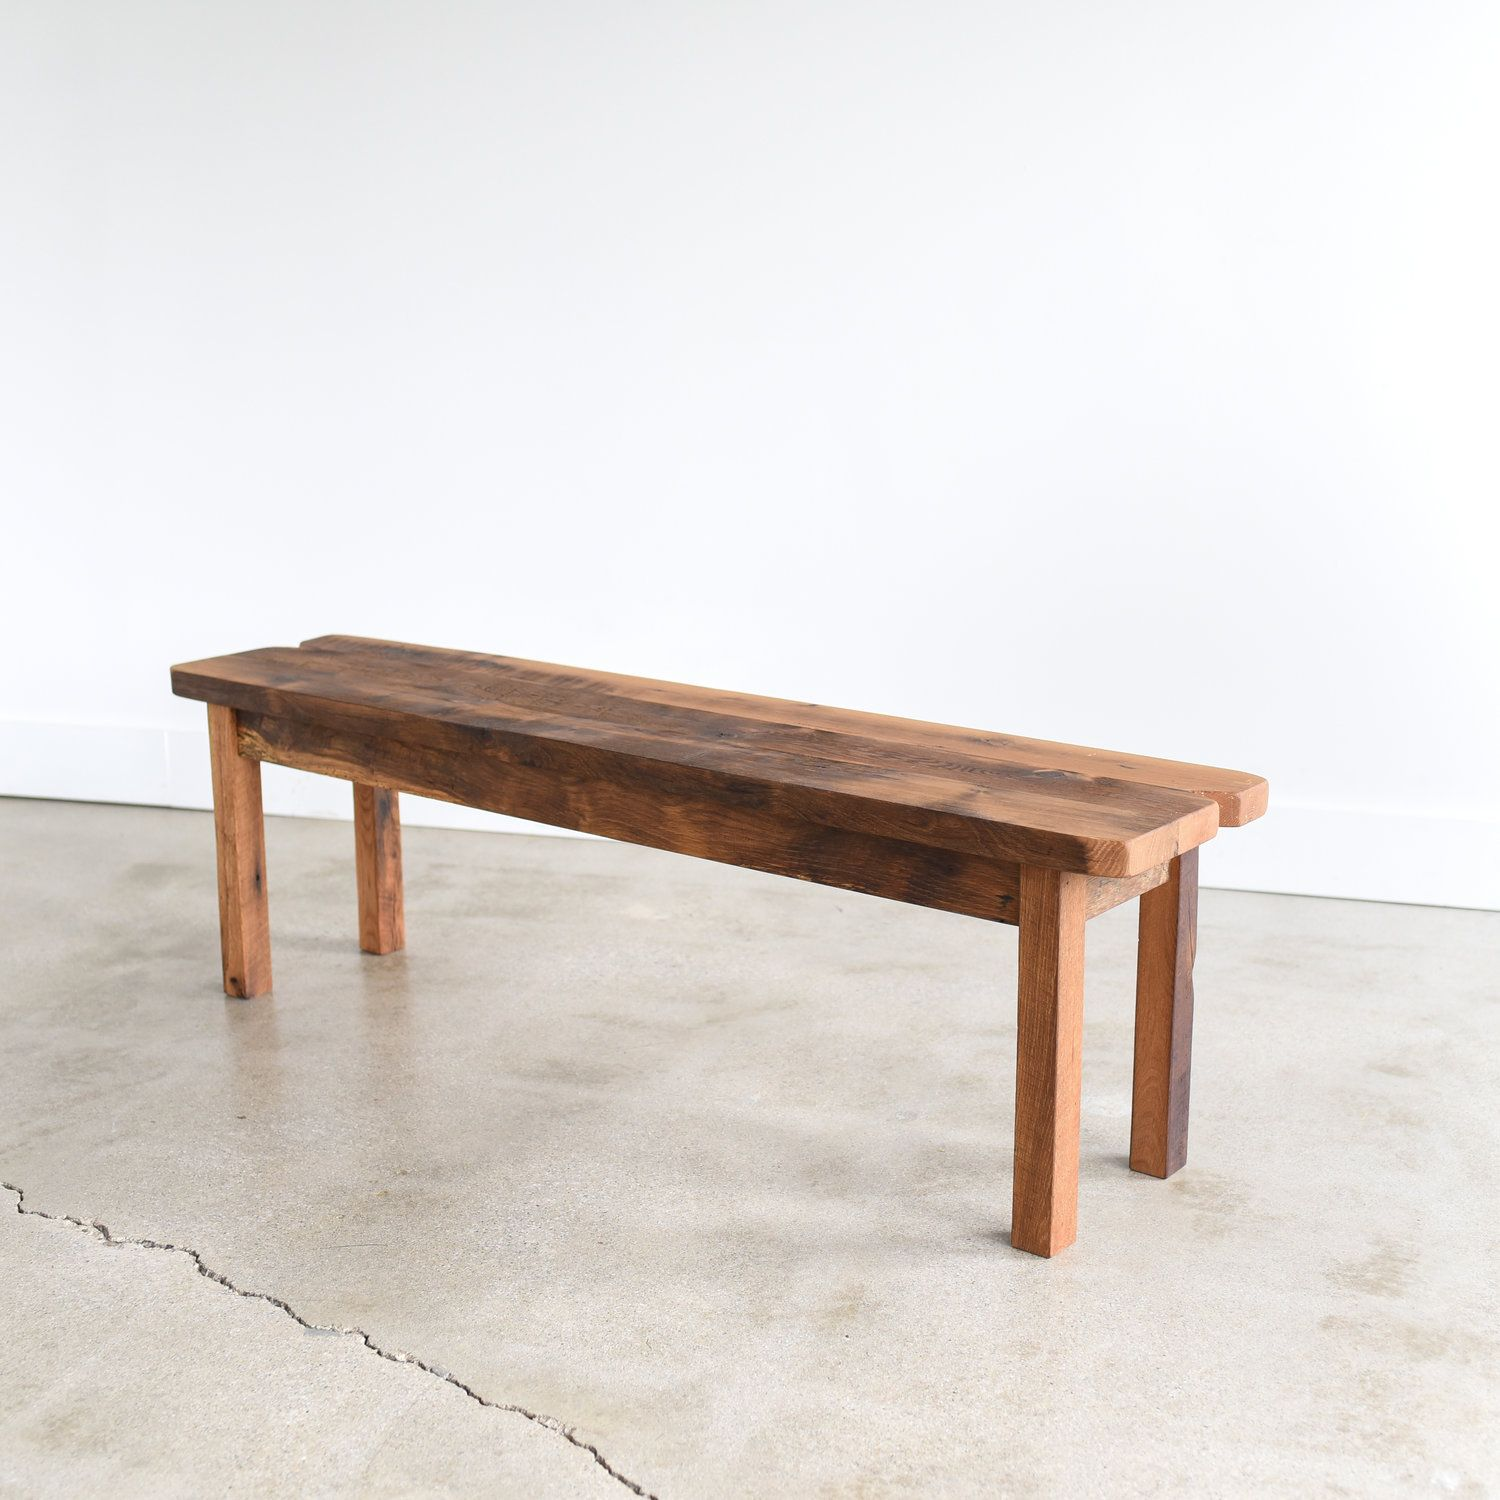 Reclaimed Wood Farmhouse Bench Smooth Finish Wood Wood